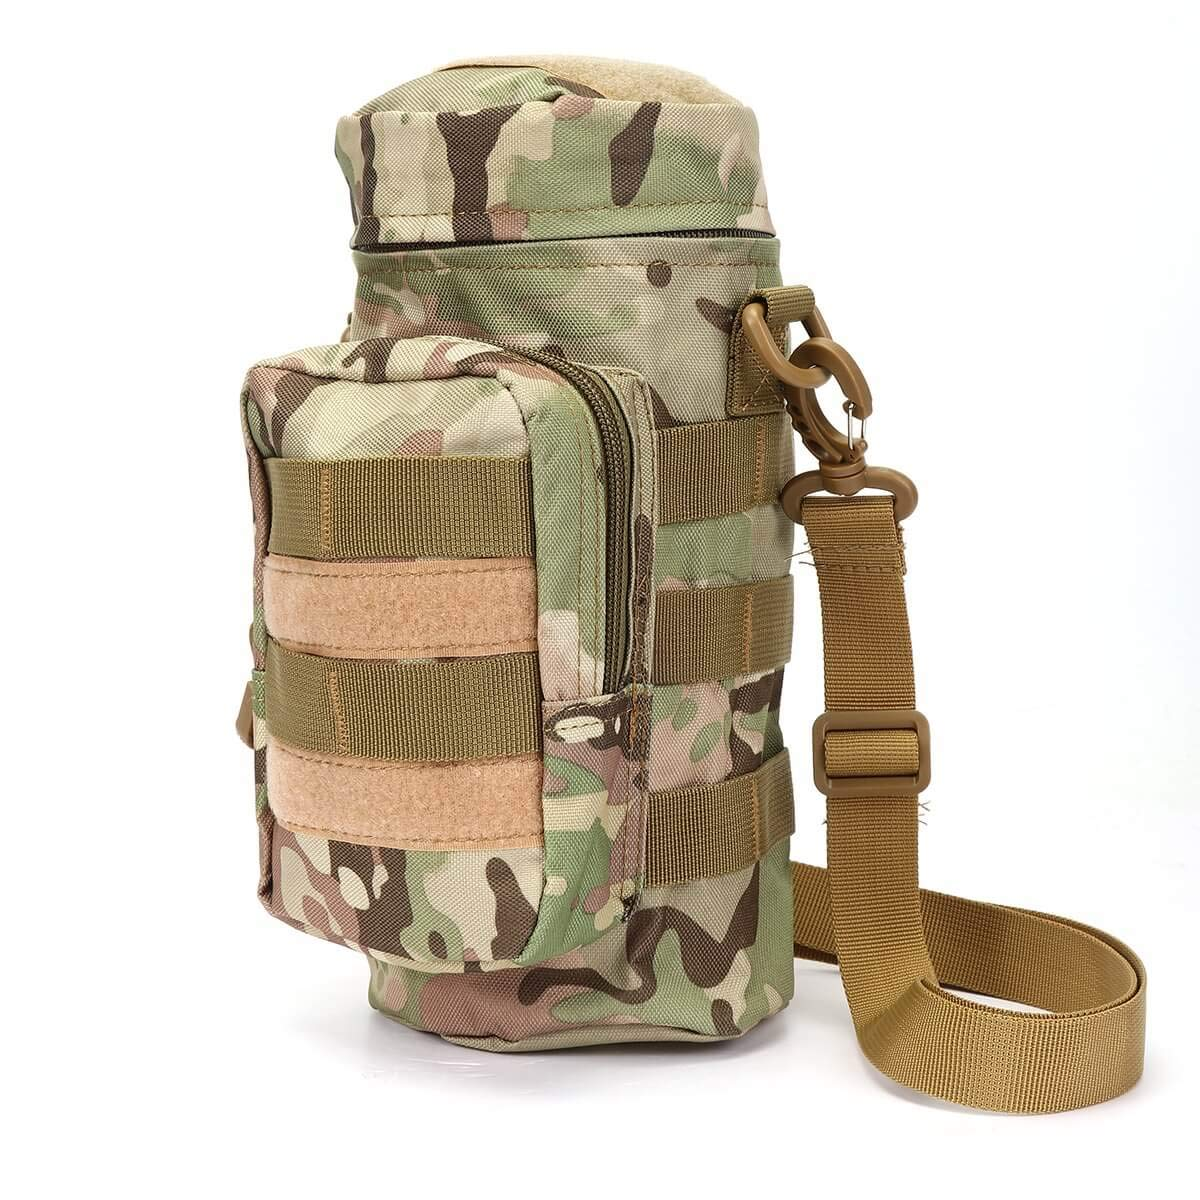 Sports Water Bottles Pouch Bag Tactical Molle Water Bottle Pouch Military Drawstring Water Bottle Pouch Holder Mesh Water Bottle Carrier Attachment Bottle with Pouch ACU Camouflage